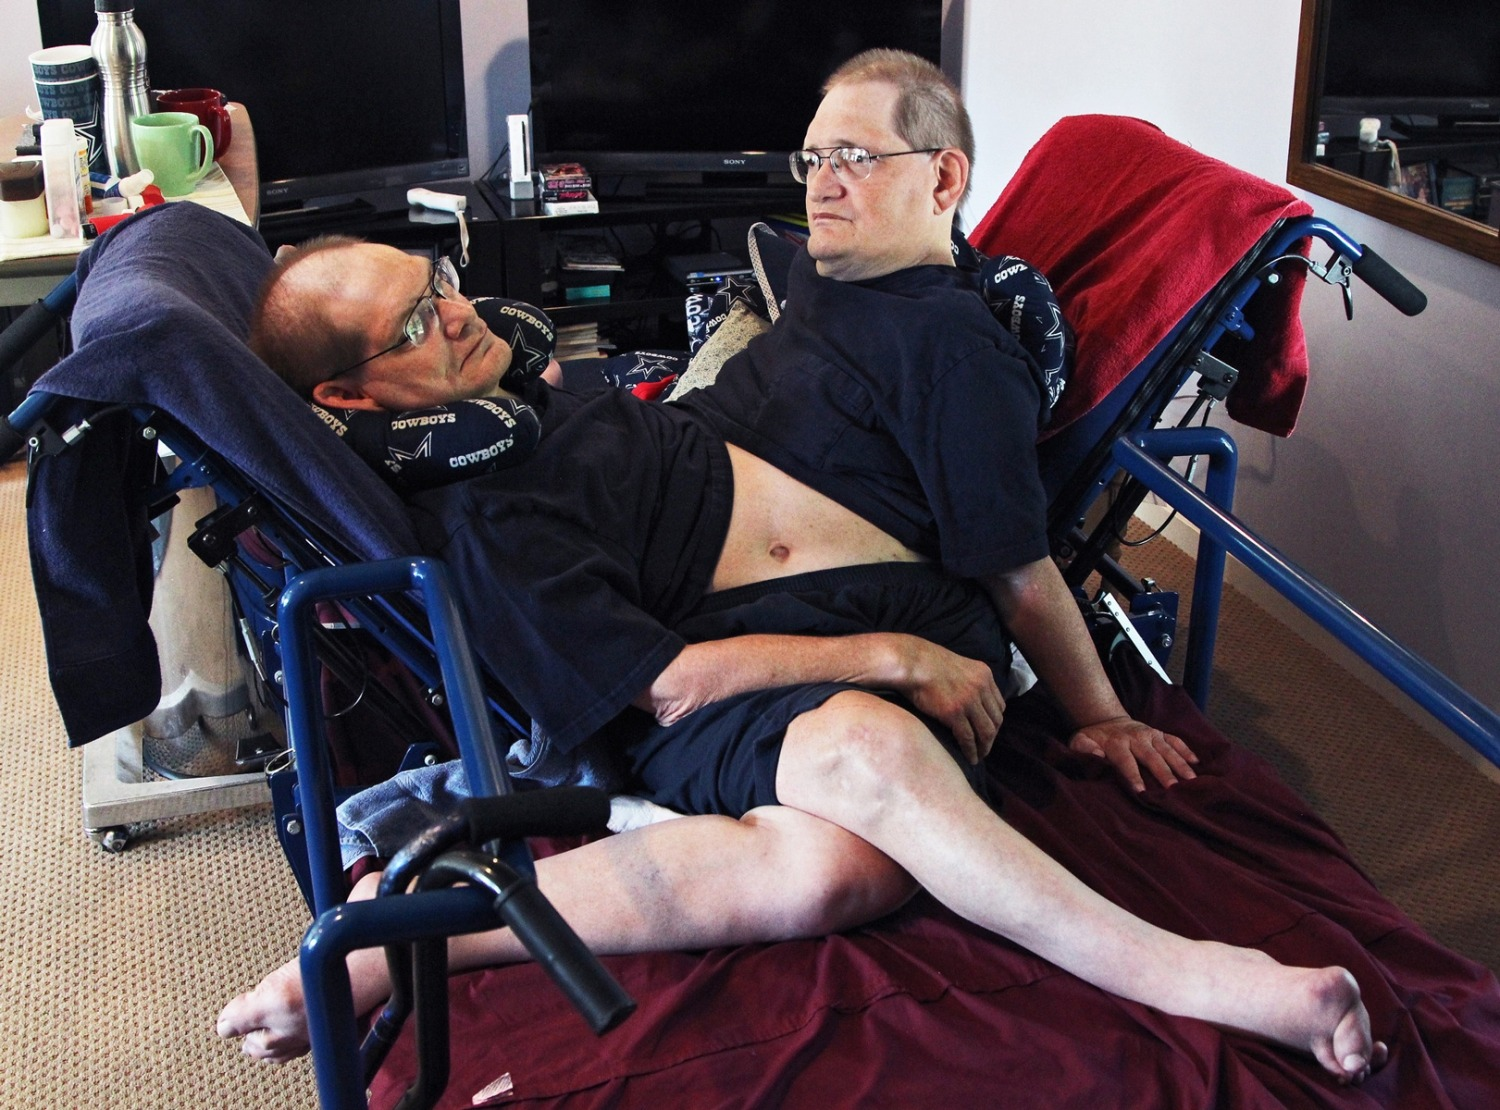 Donnie, left, and Ronnie Galyon sit inside their Beavercreek, Ohio, home on Wednesday, July 2, 2014. Donnie and Ronnie are nearing the record for longest living conjoined twins. The Galyons, born Oct. 28, 1951 at St. Elizabeth Hospital in Dayton, now live in Beavercreek with their brother, Jim Galyon and his wife Mary, who provide 24-7 care for them.